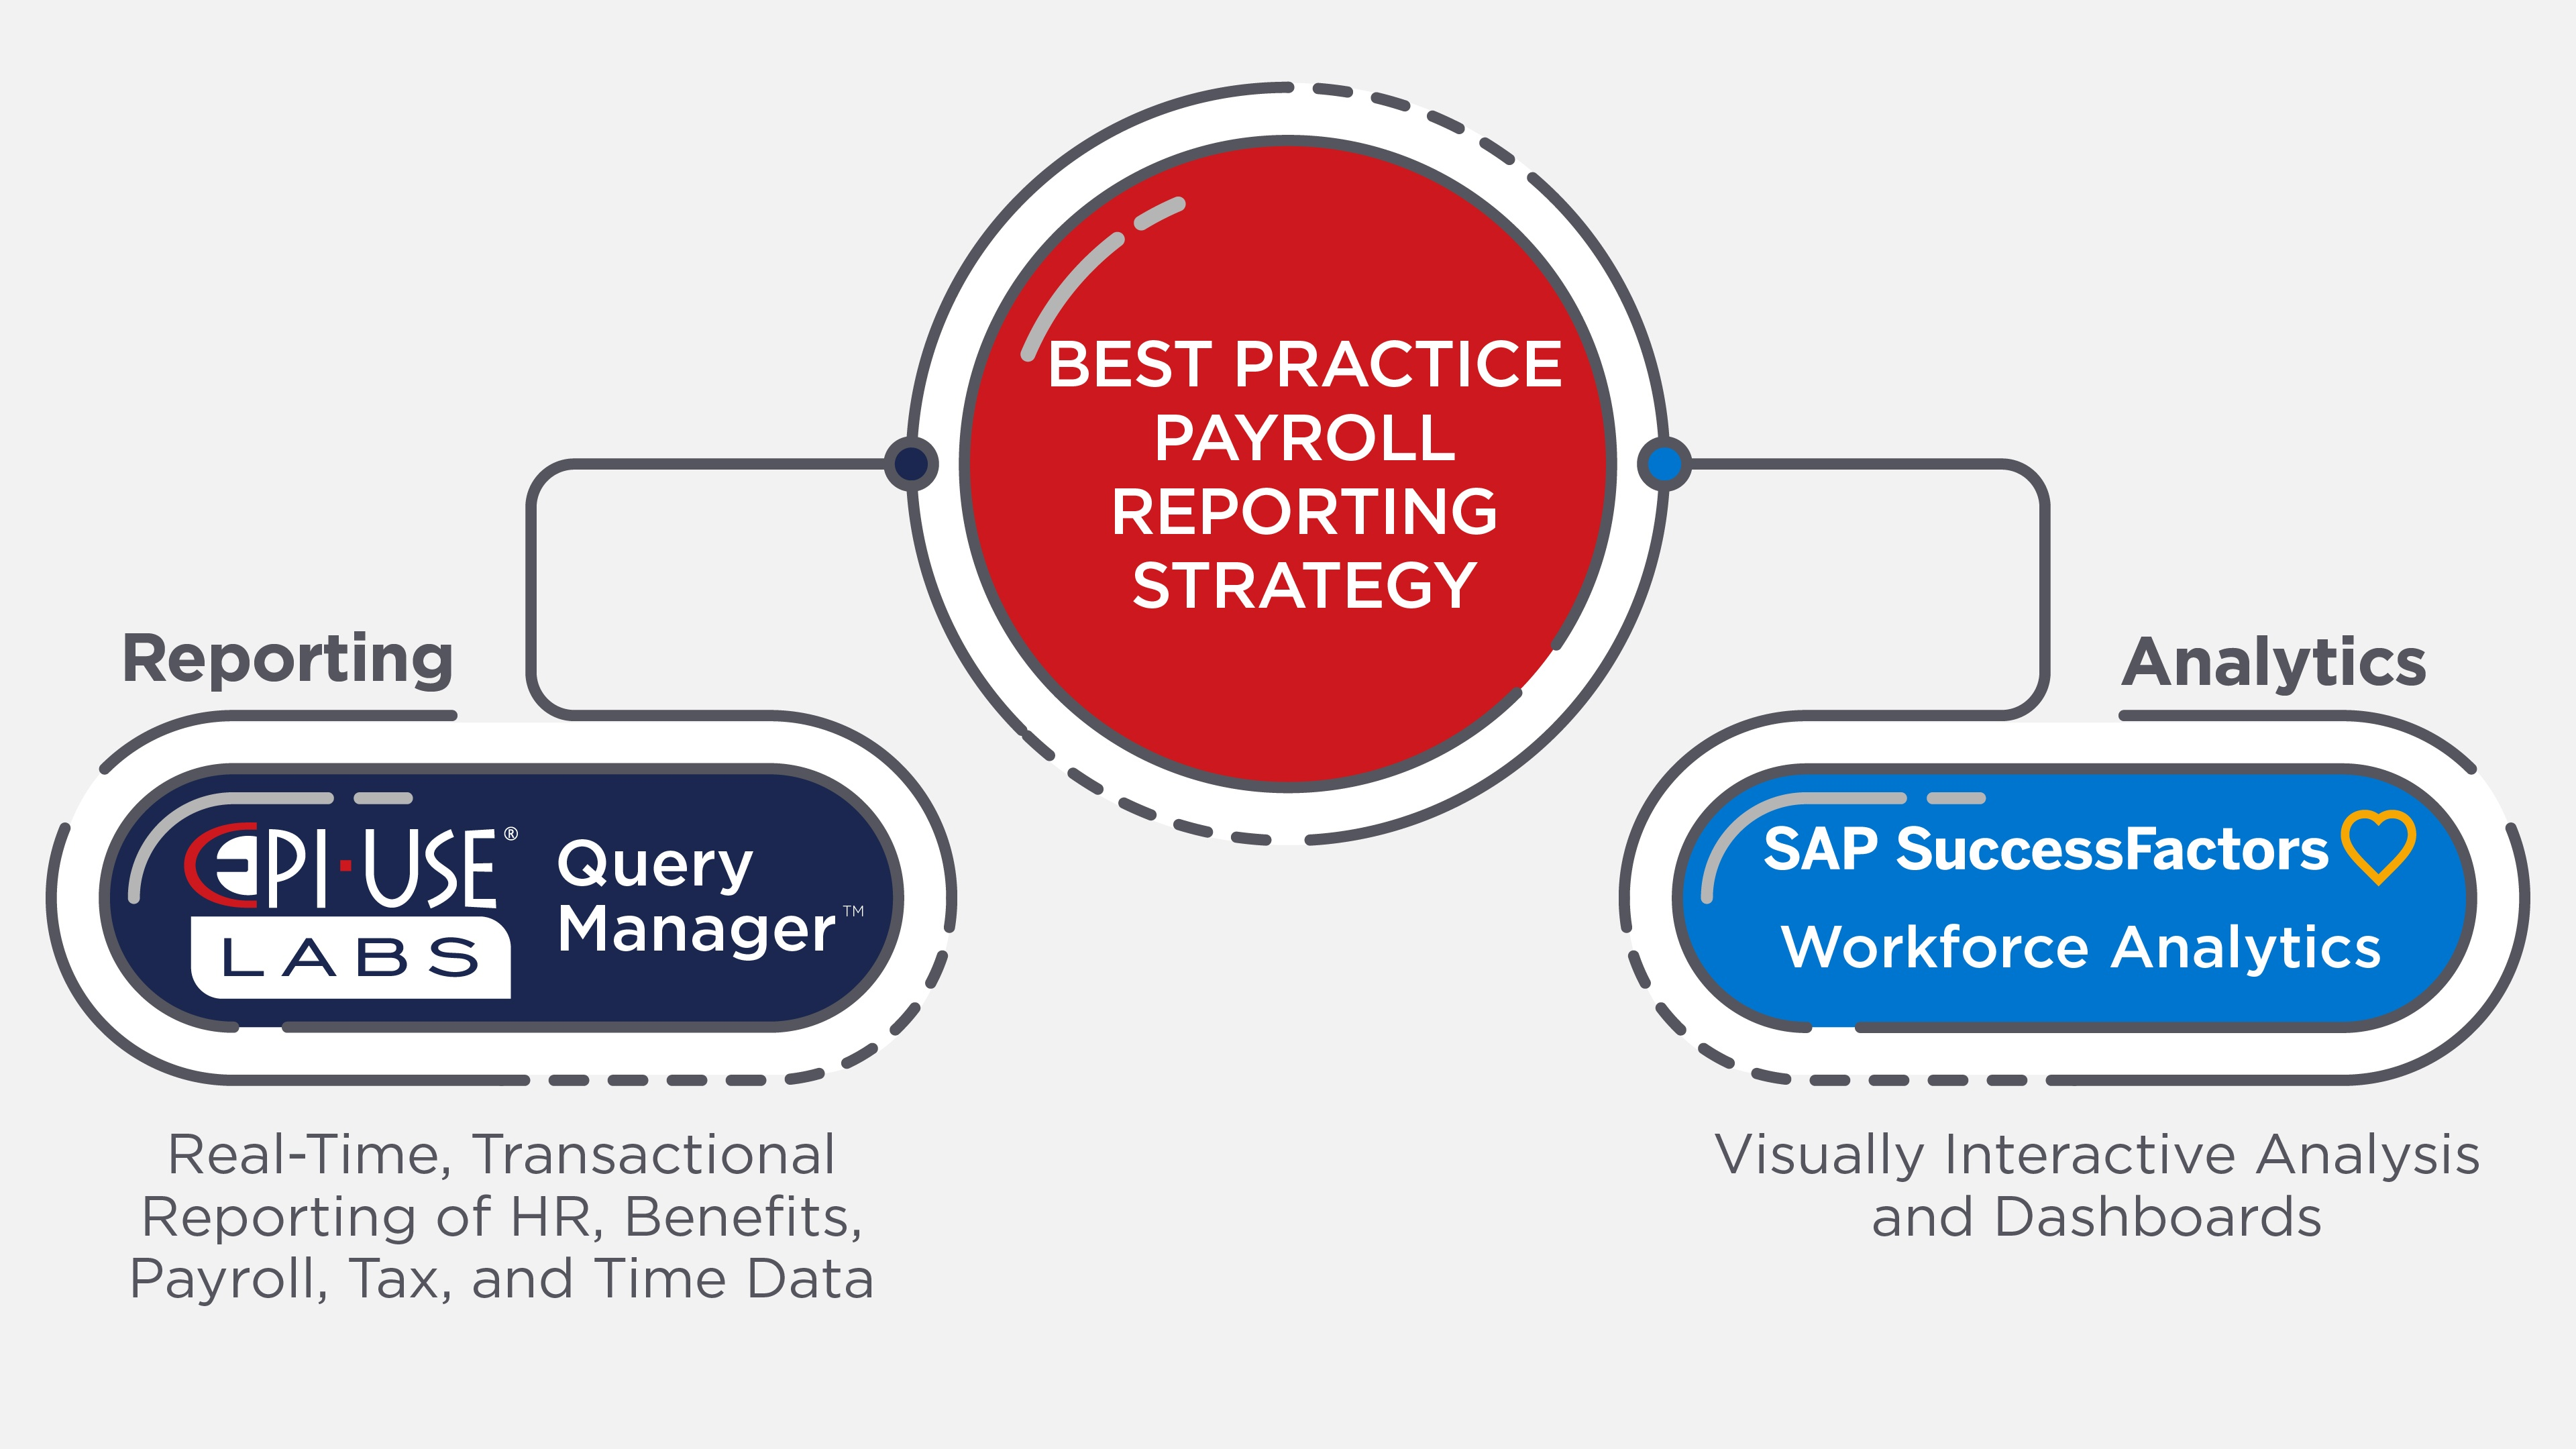 Trying To Compare Query Manager And Sap Successfactors Workforce